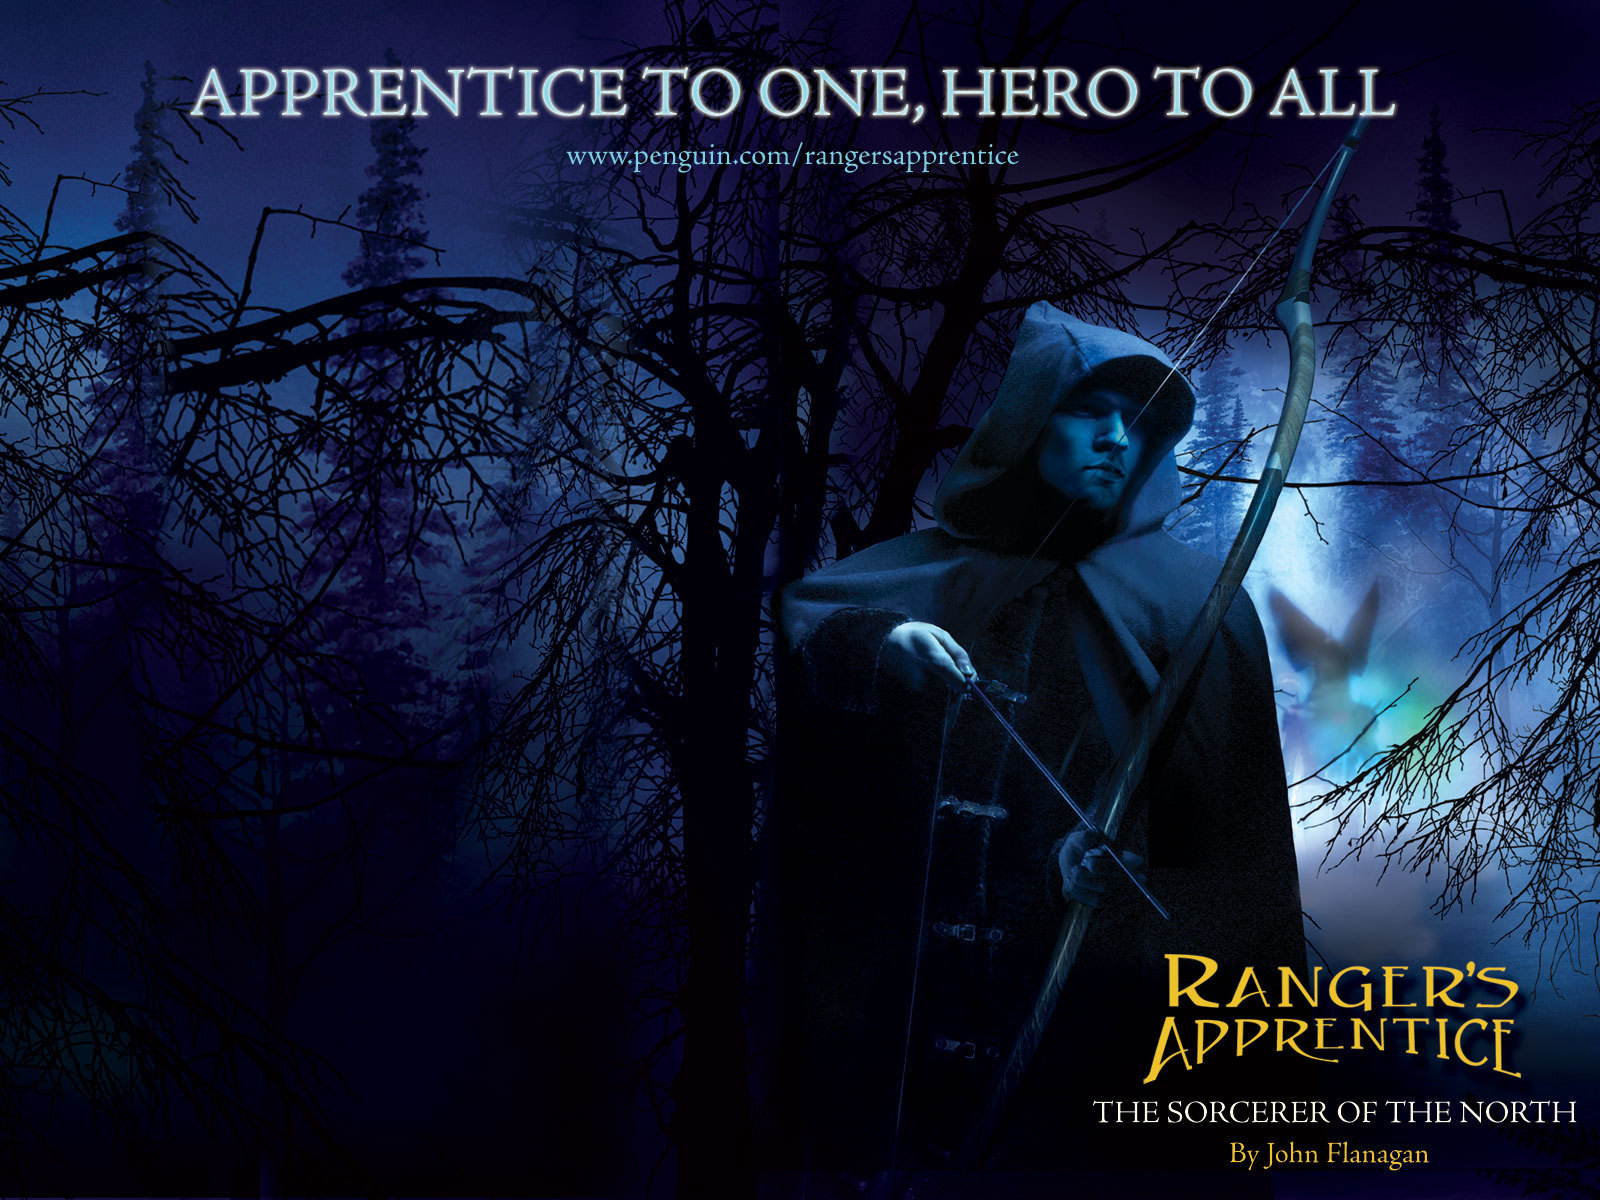 The Ranger's Apprentice images *The Sorceror of the North